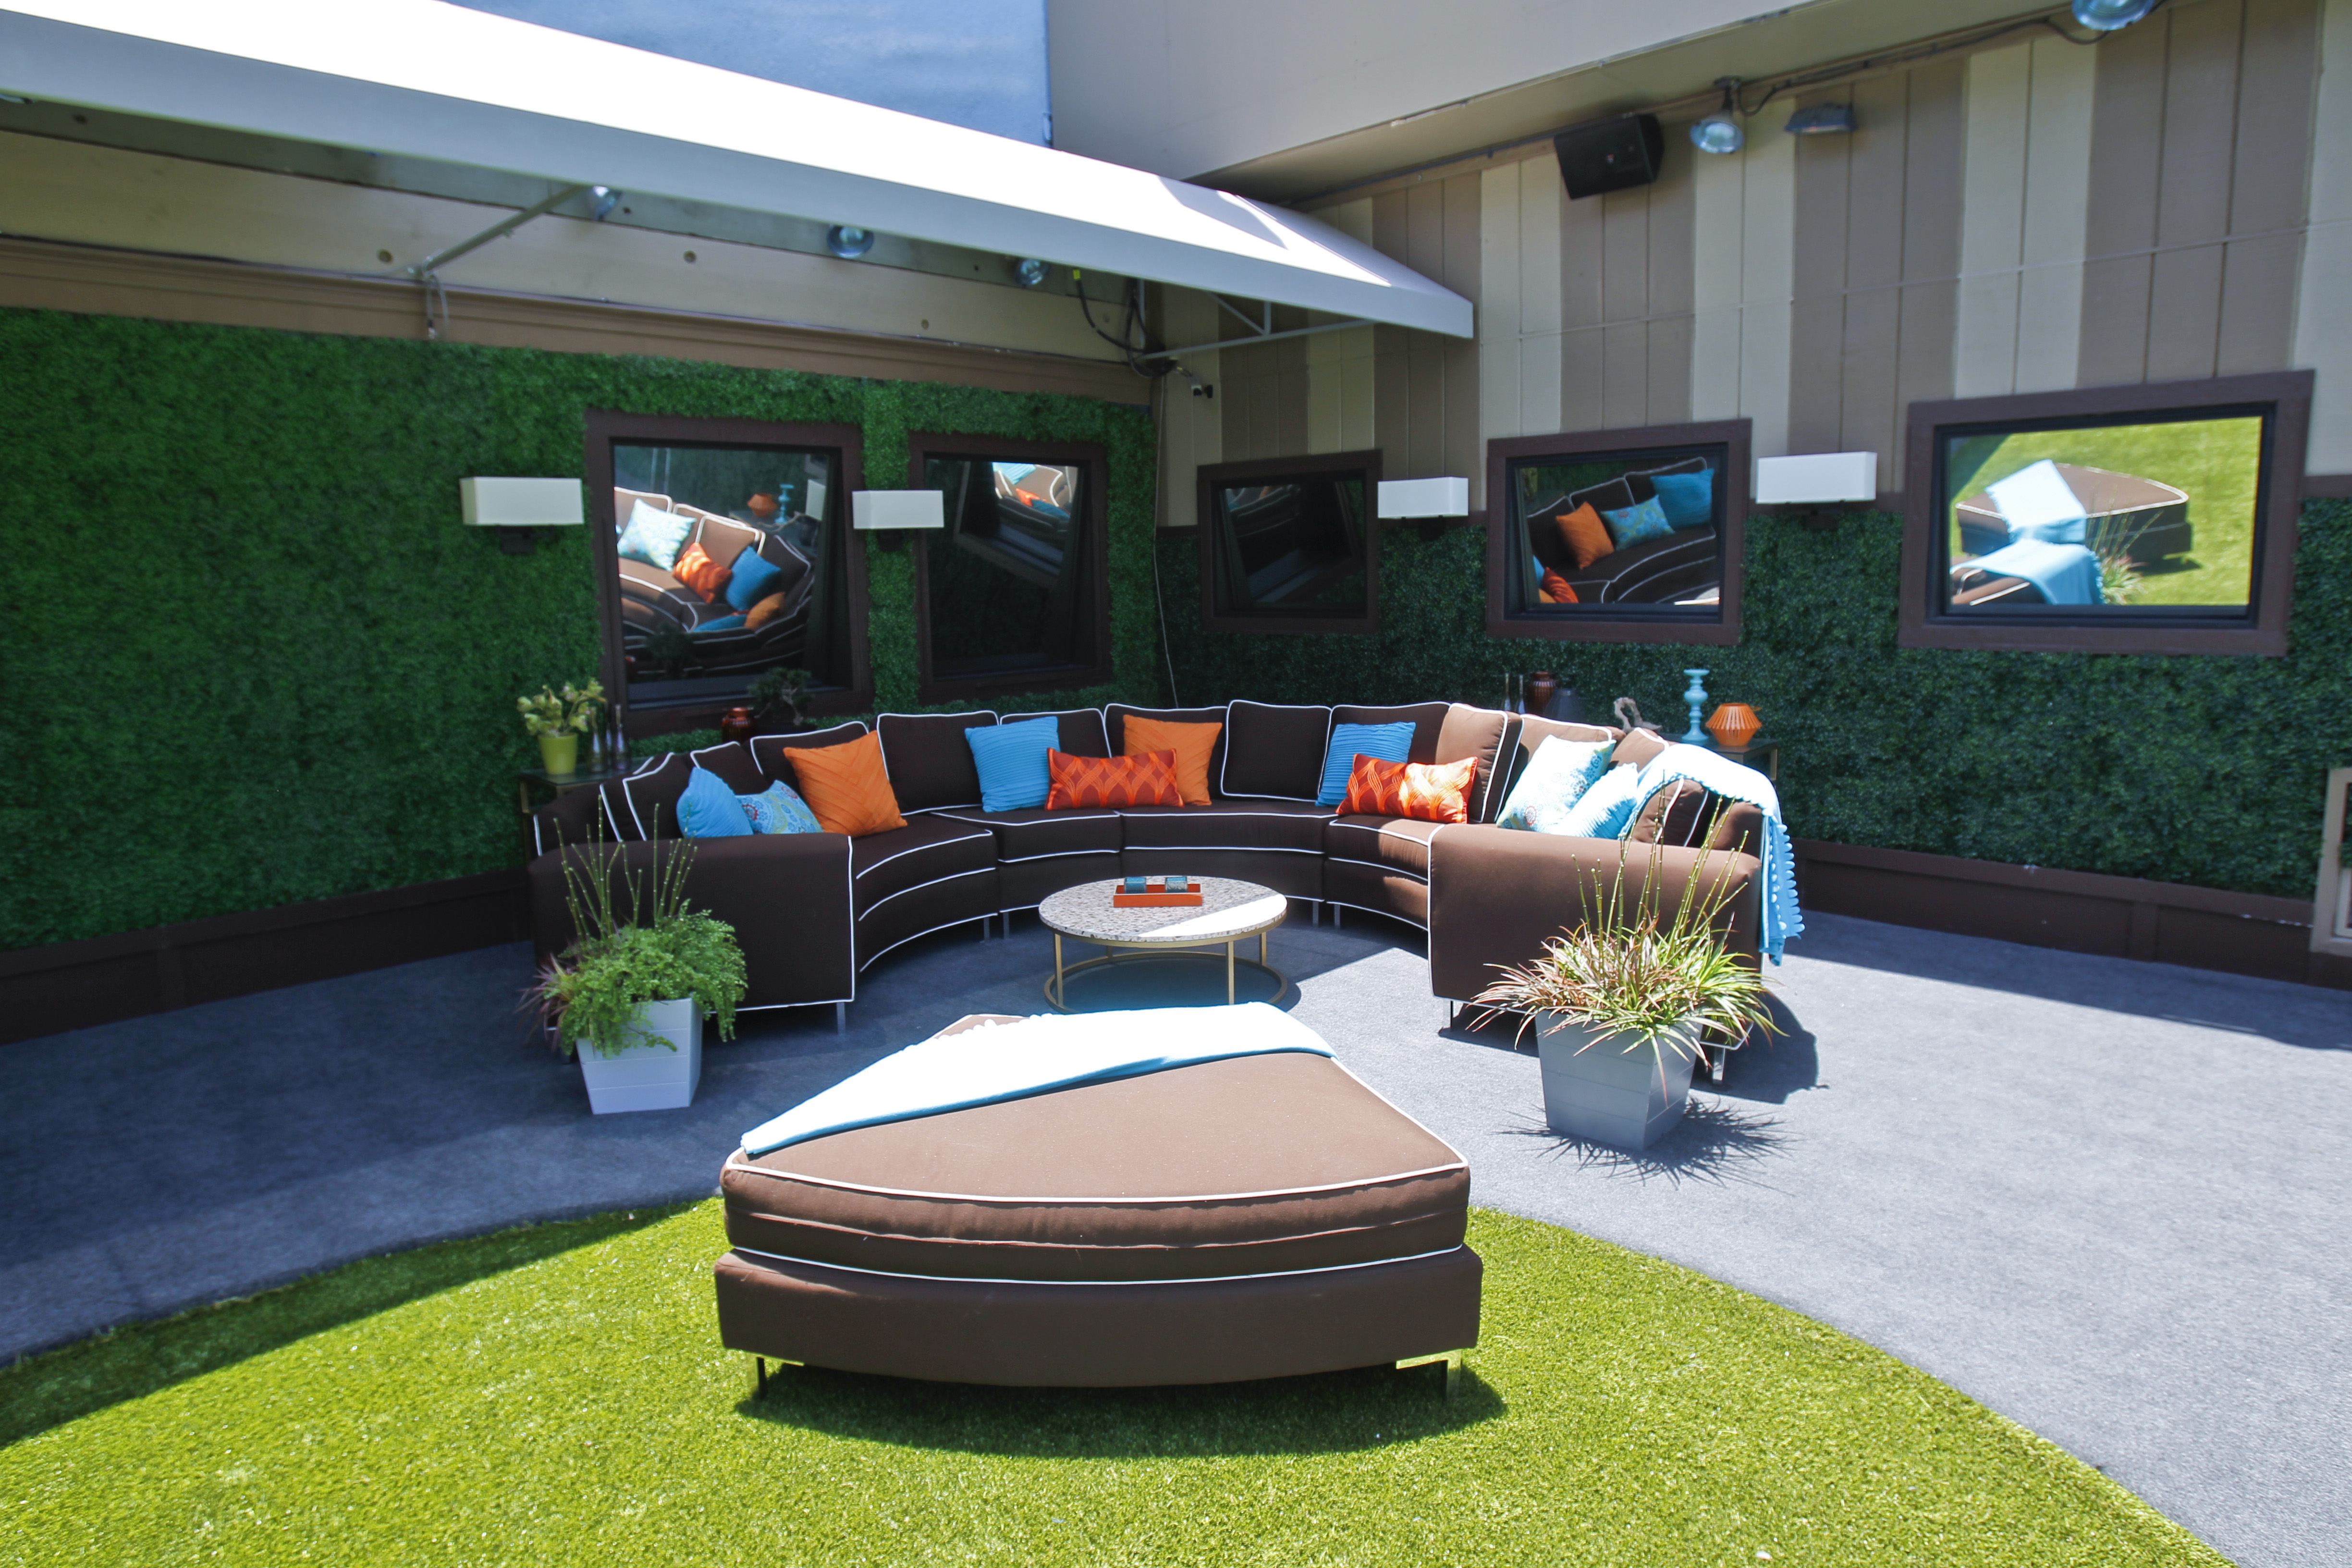 First Look at the Big Brother House